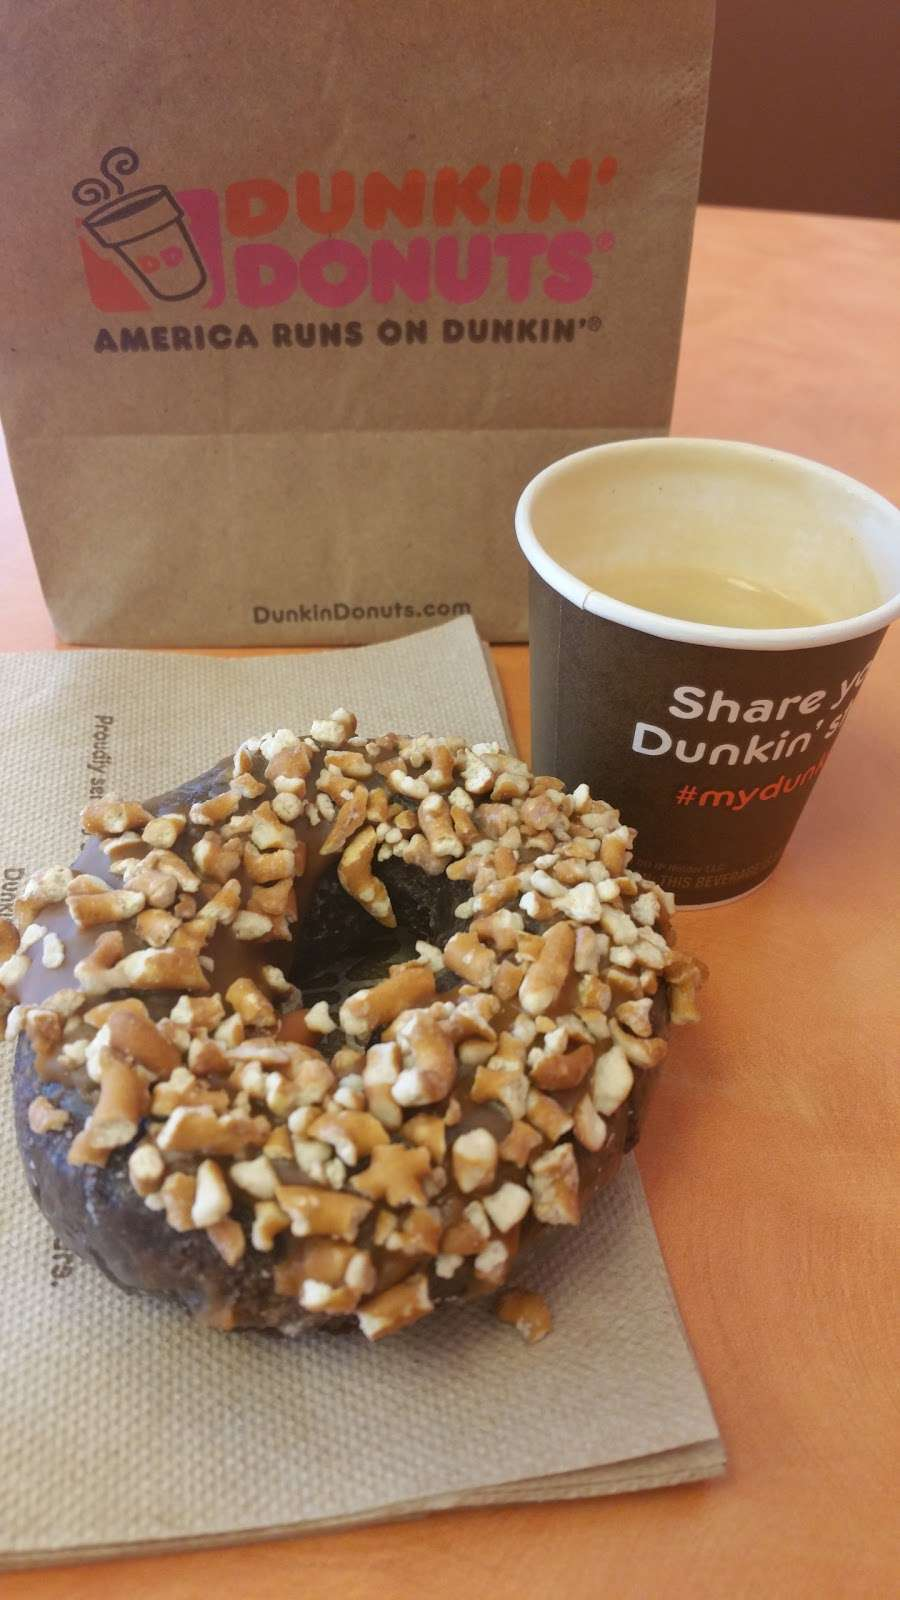 Dunkin - bakery  | Photo 9 of 10 | Address: 1200 Nanticoke Rd, Salisbury, MD 21801, USA | Phone: (410) 630-8260